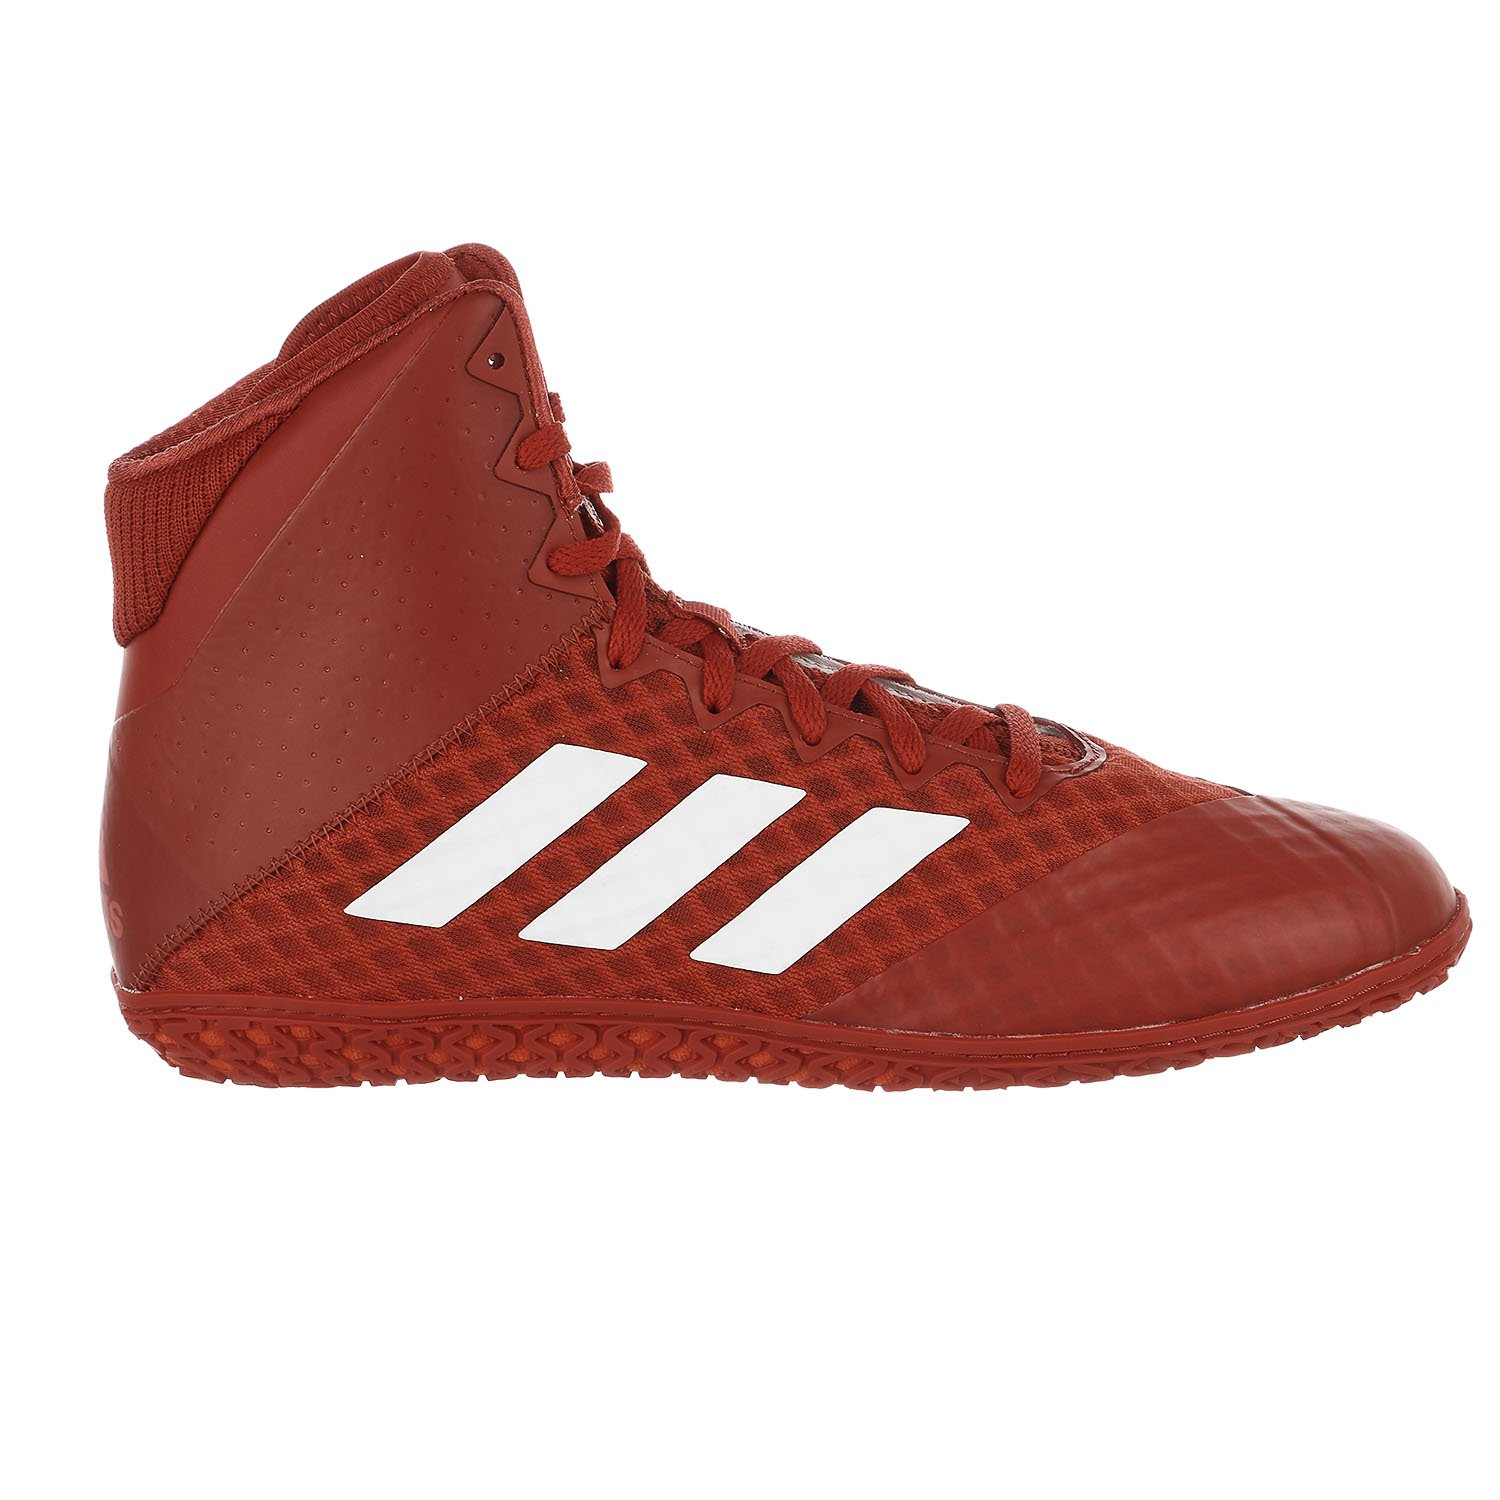 Adidas Tapis Wizard 4 Rouge Blanc Wrestling Chaussures (Ac6972)